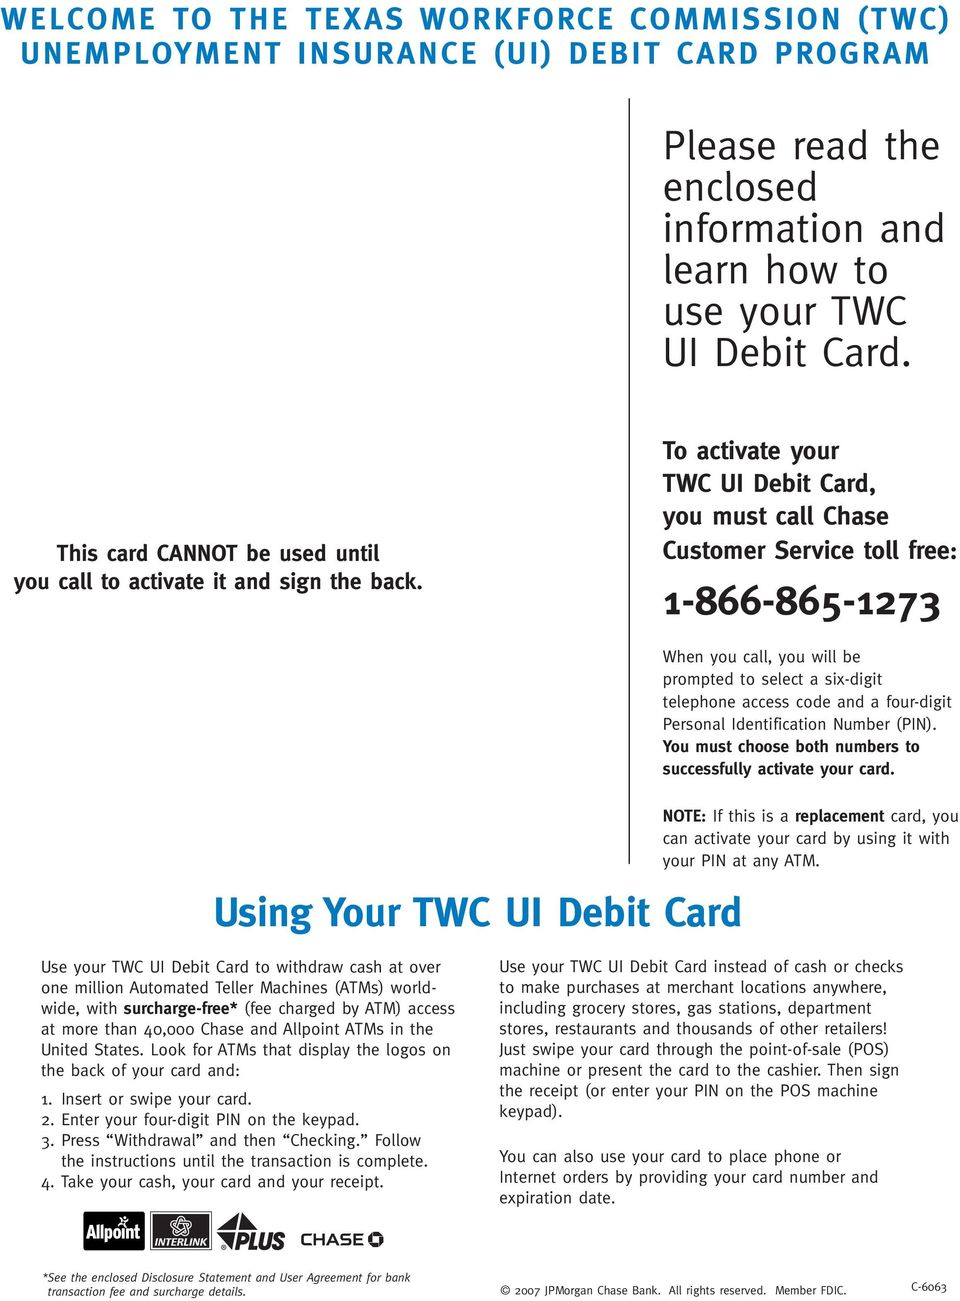 To activate your TWC UI Debit Card, you must call Chase Customer Service toll free: 1-866-865-1273 When you call, you will be prompted to select a six-digit telephone access code and a four-digit